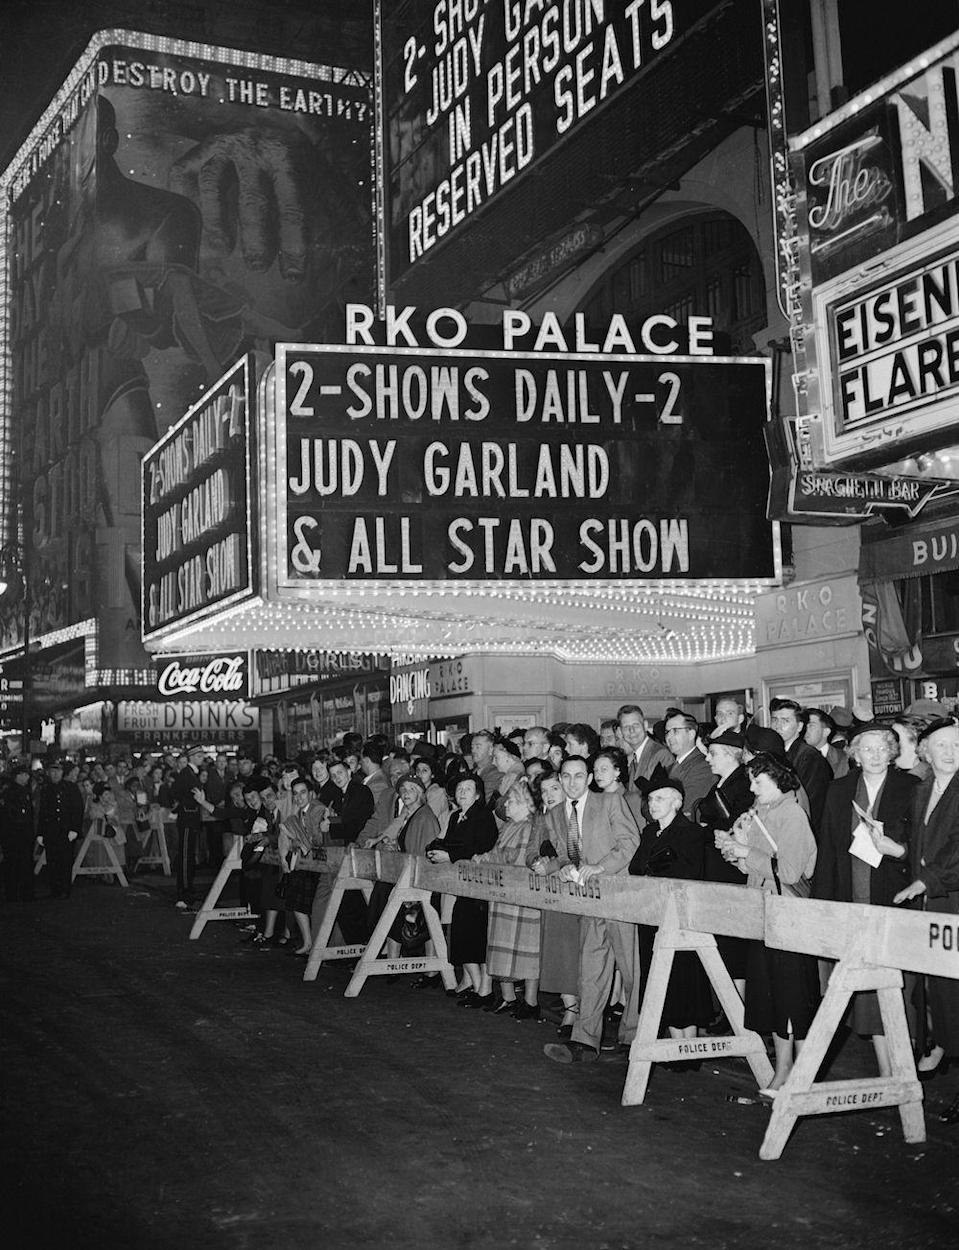 "<p>On October 16, Judy Garland begins her concert series at The Palace. Though her run was only supposed to be four weeks, she's such a hit that her stay is <a href=""https://backlots.net/2012/05/22/a-star-is-born-1954-and-judy-garlands-1951-palace-engagement-a-comparison/"" rel=""nofollow noopener"" target=""_blank"" data-ylk=""slk:extended to 19 weeks"" class=""link rapid-noclick-resp"">extended to 19 weeks</a>. </p><p><span class=""redactor-invisible-space""><em>RELATED: <a href=""https://www.goodhousekeeping.com/life/entertainment/g28307872/rare-photos-of-judy-garland/"" rel=""nofollow noopener"" target=""_blank"" data-ylk=""slk:40 Rare Photos of Judy Garland You've Probably Never Seen"" class=""link rapid-noclick-resp"">40 Rare Photos of Judy Garland You've Probably Never Seen</a></em></span></p>"